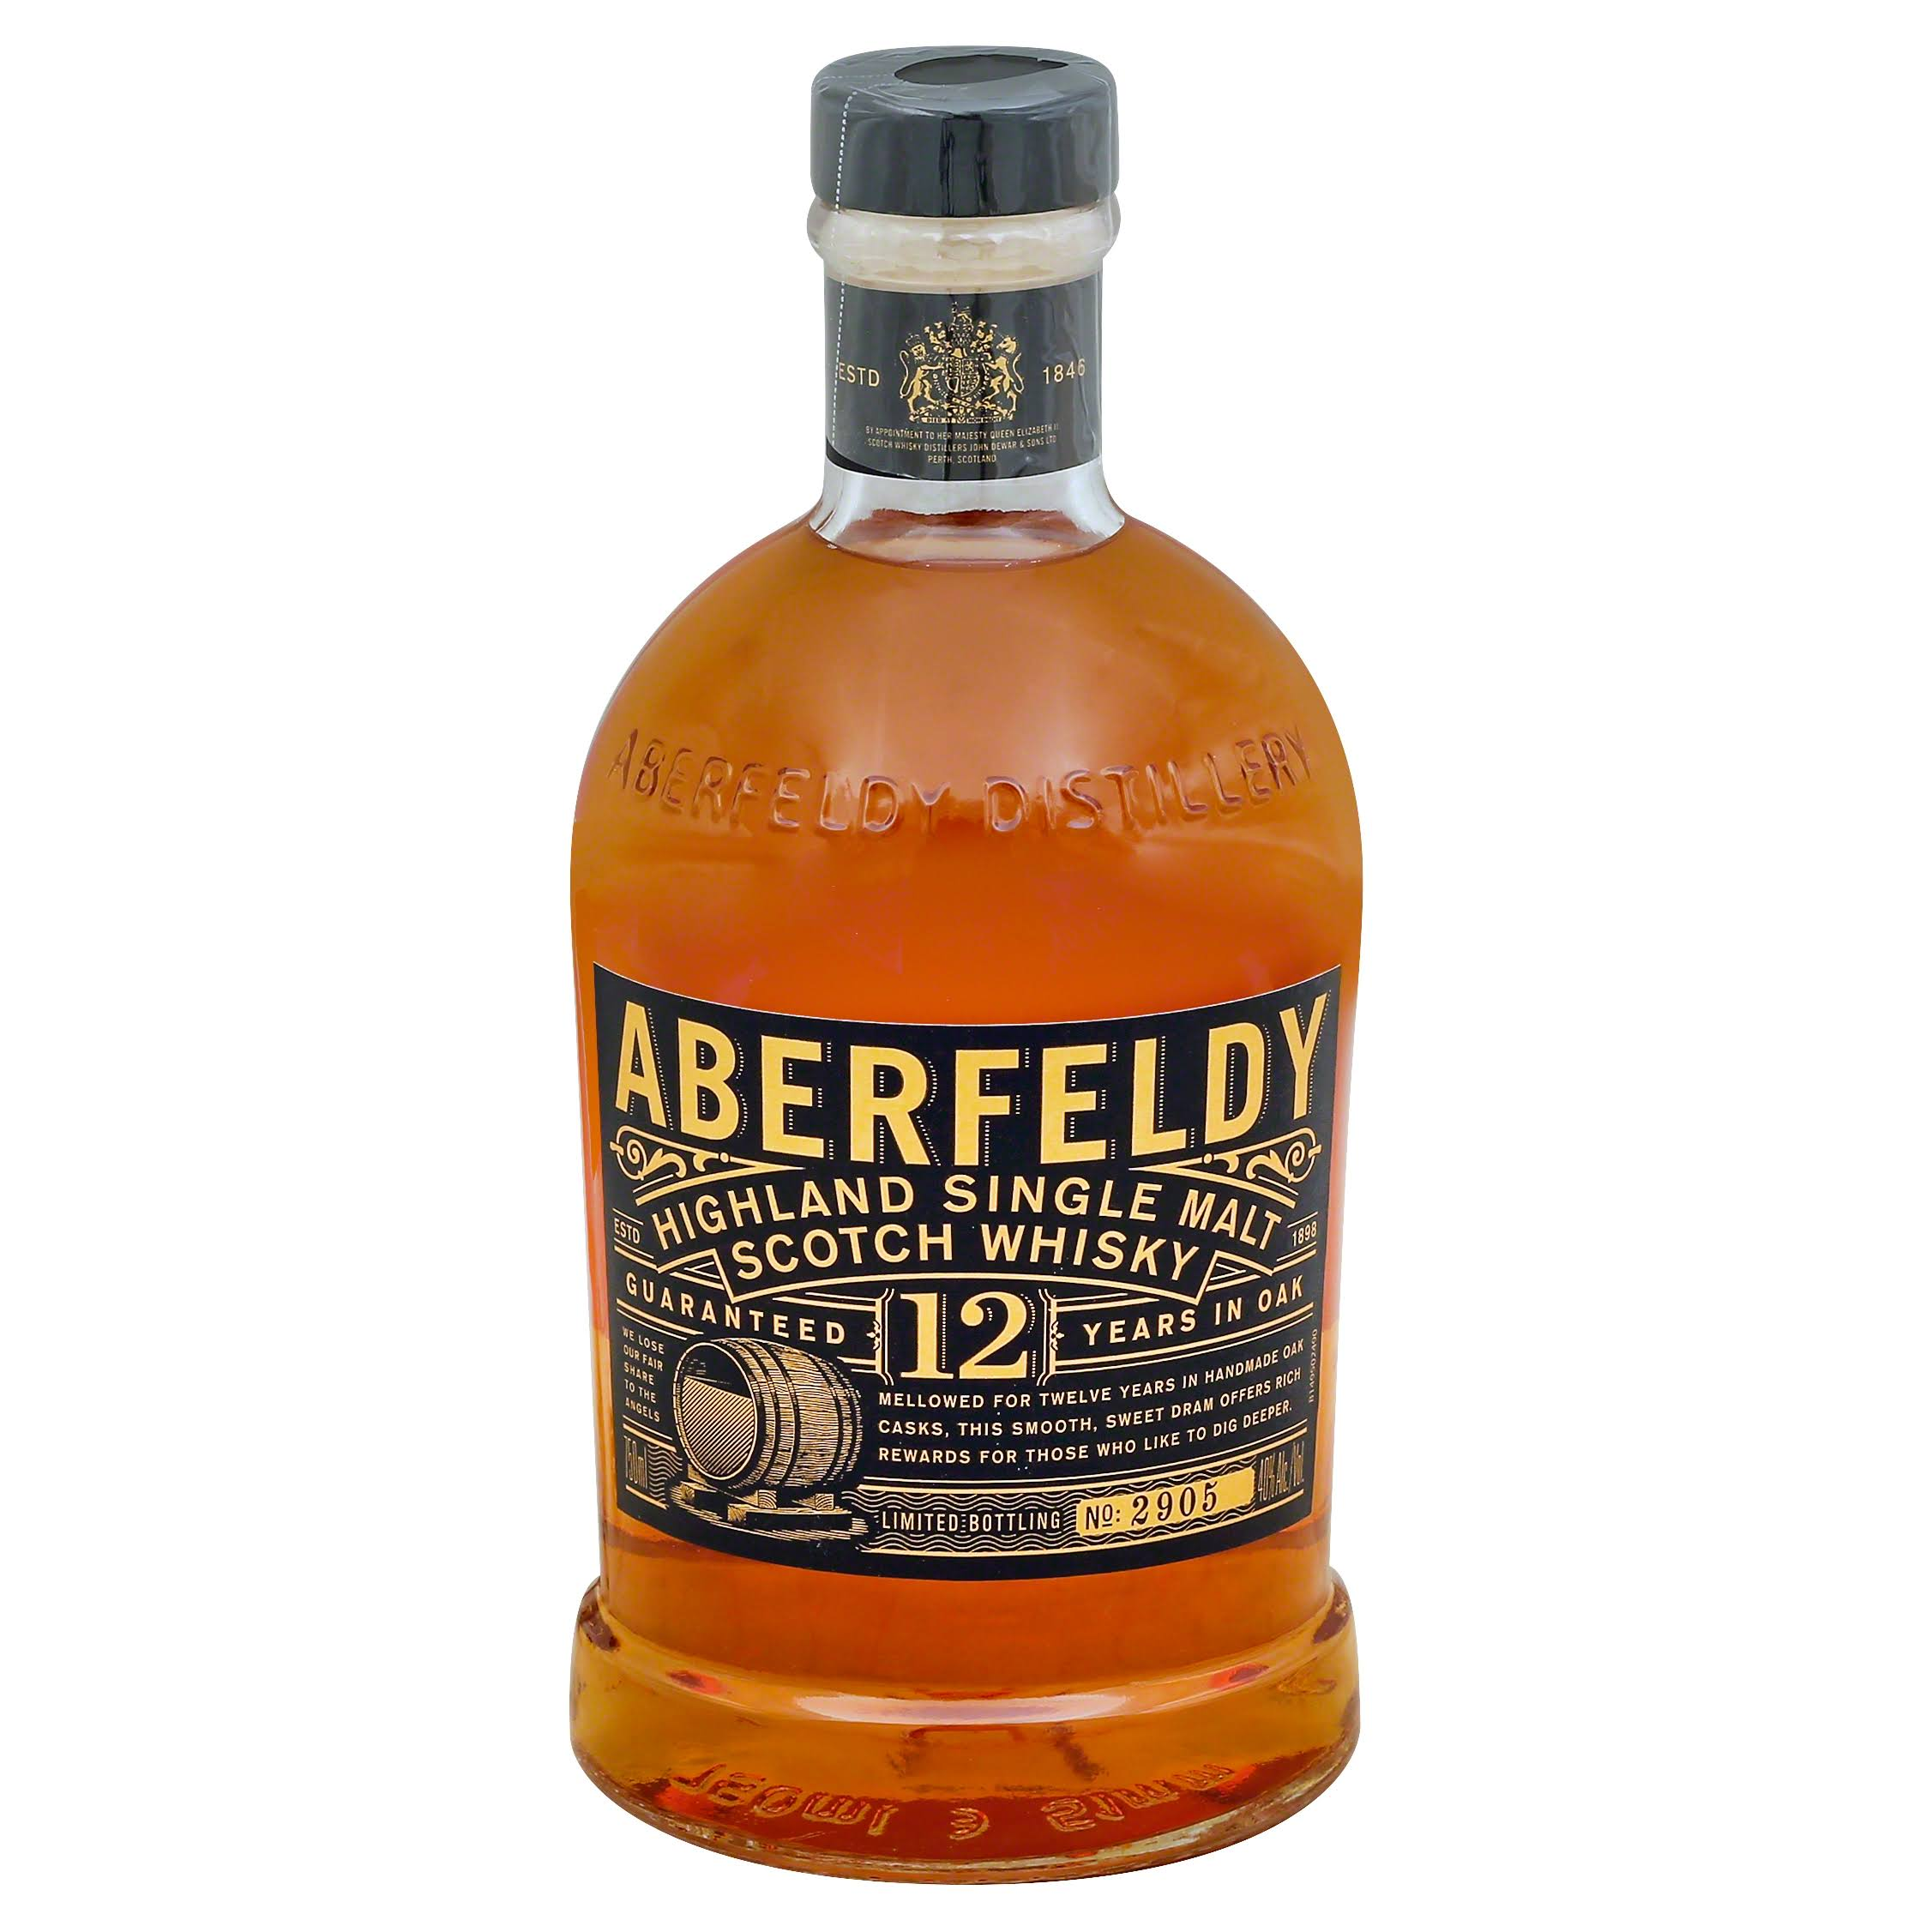 Aberfeldy Single Malt Scotch Whiskey